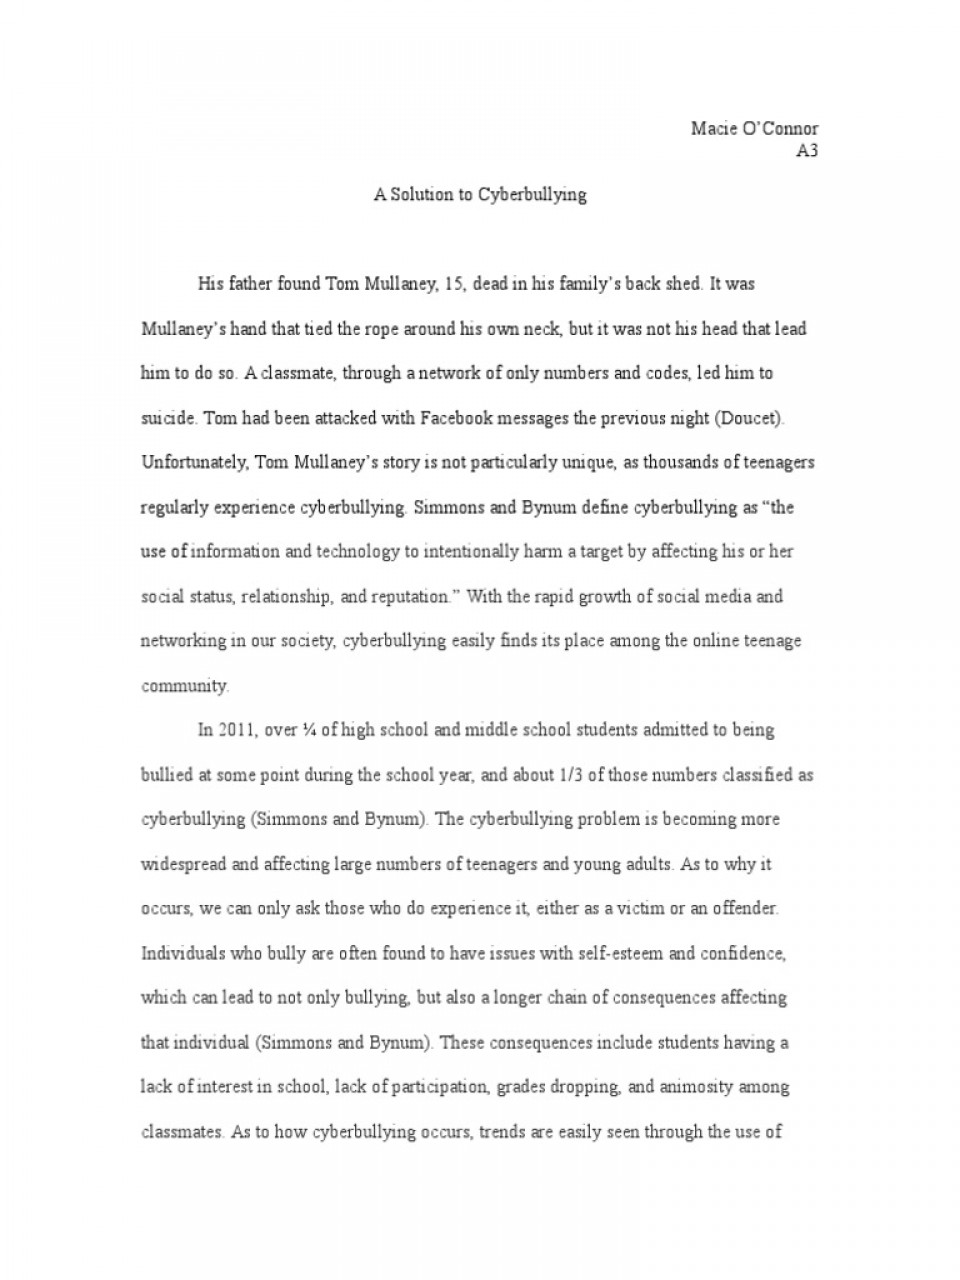 008 Essay Example Bullying Problem Solution Cyberbullying Communication How To Stop In Schools High School Avoid At Deal With Ways Prevent Awful Persuasive Ideas Argumentative Thesis 960